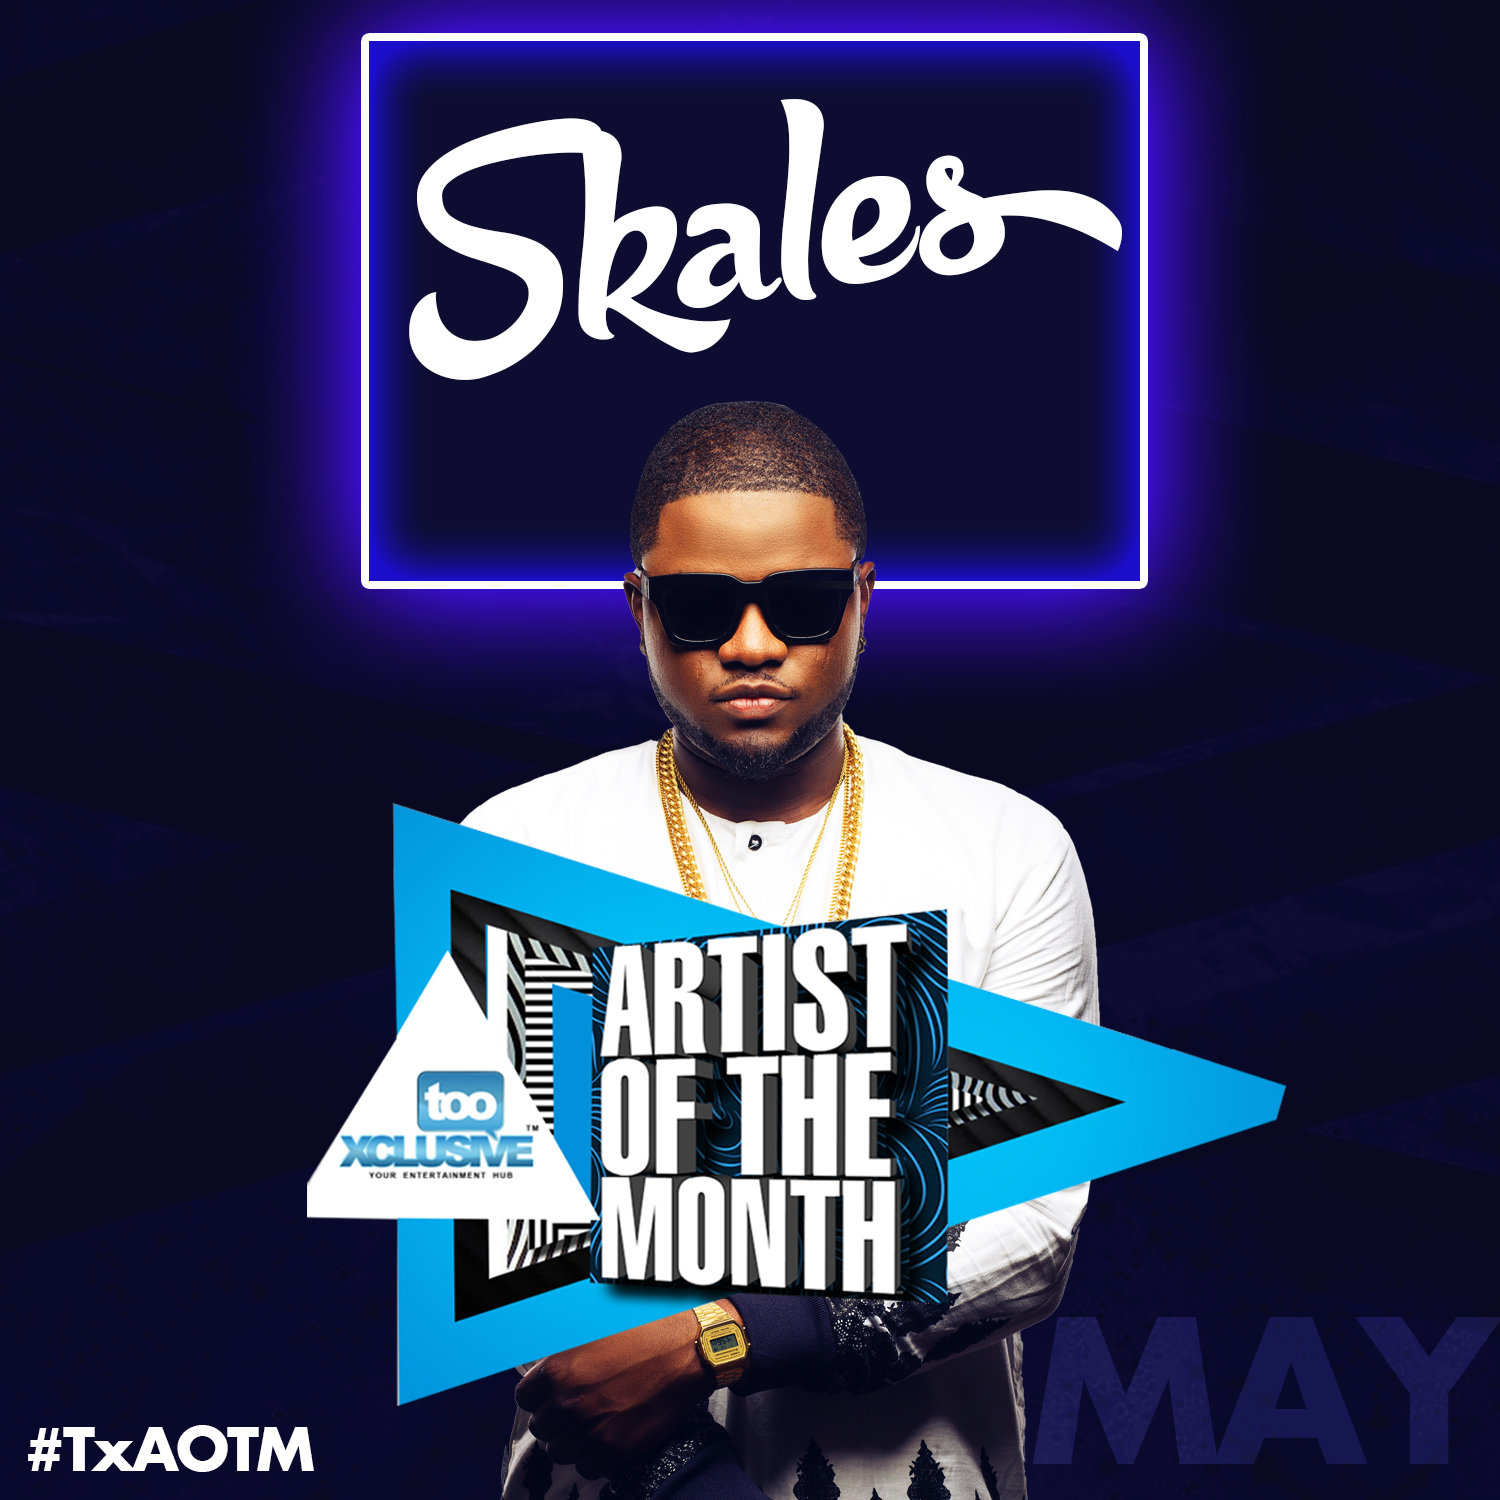 TX Artiste of the Month #TxAOTM – Skales [POSTER]